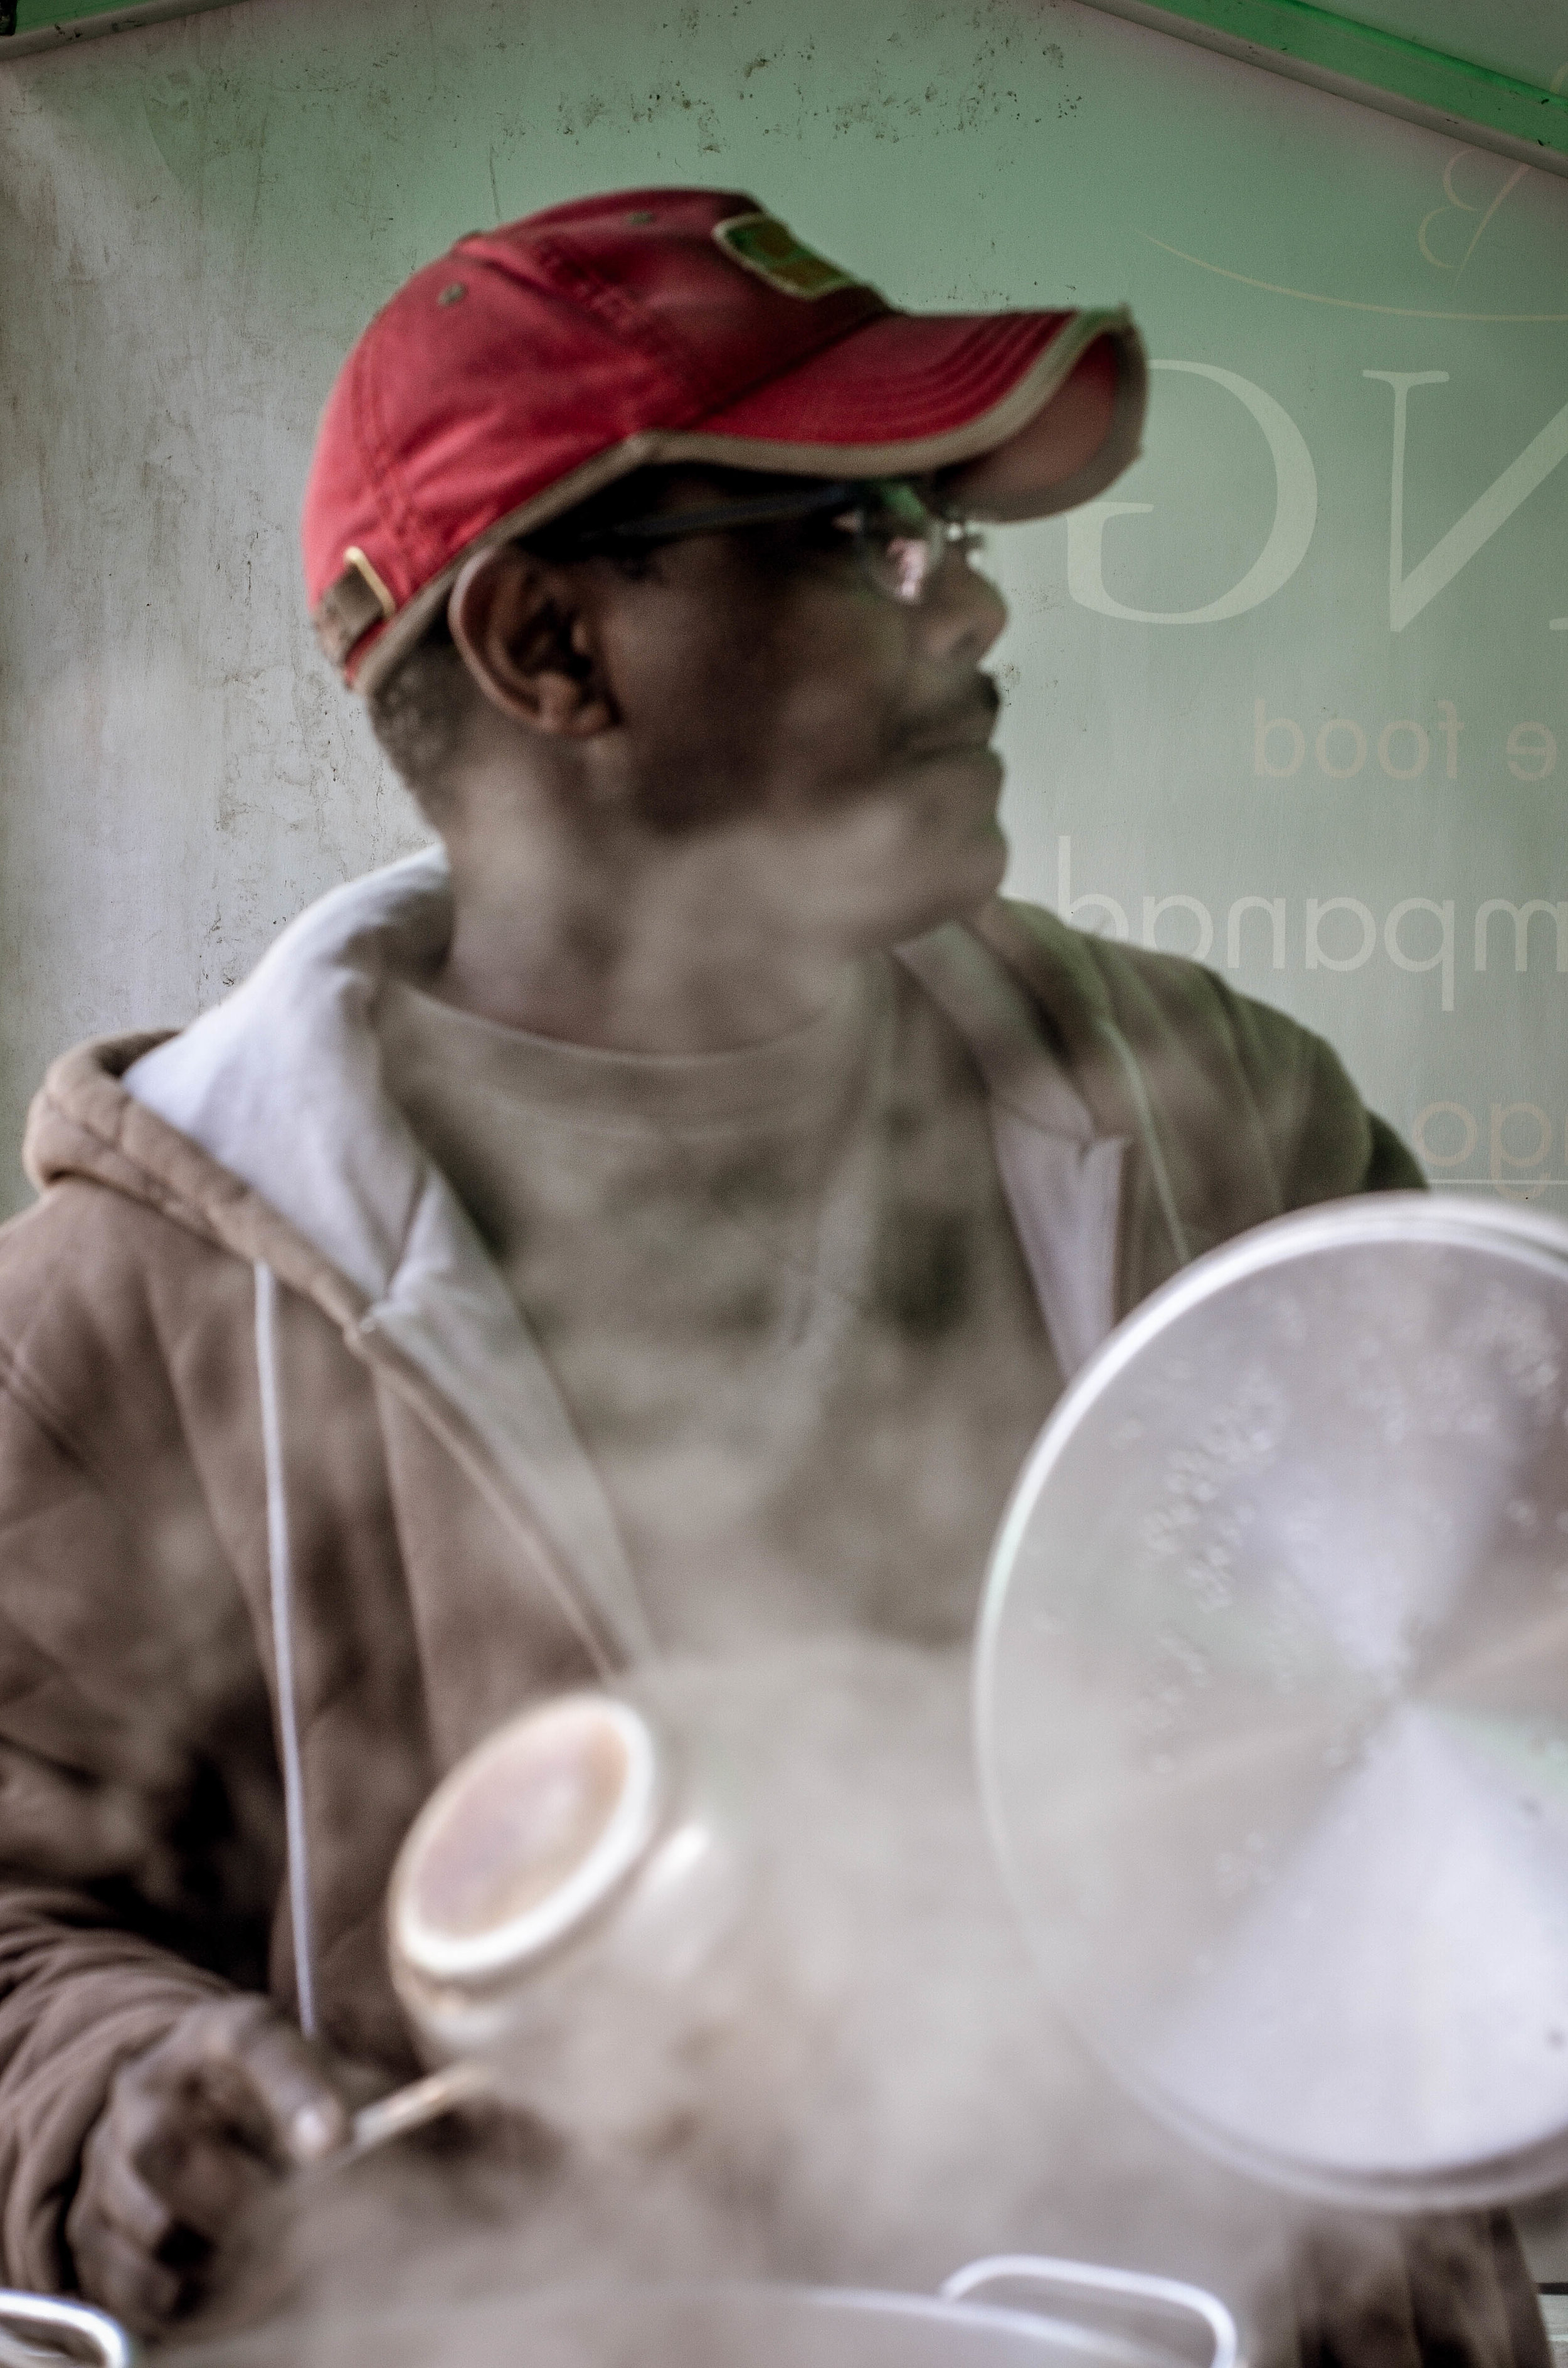 Anwar from Sudan brewing up some chai at the markets.